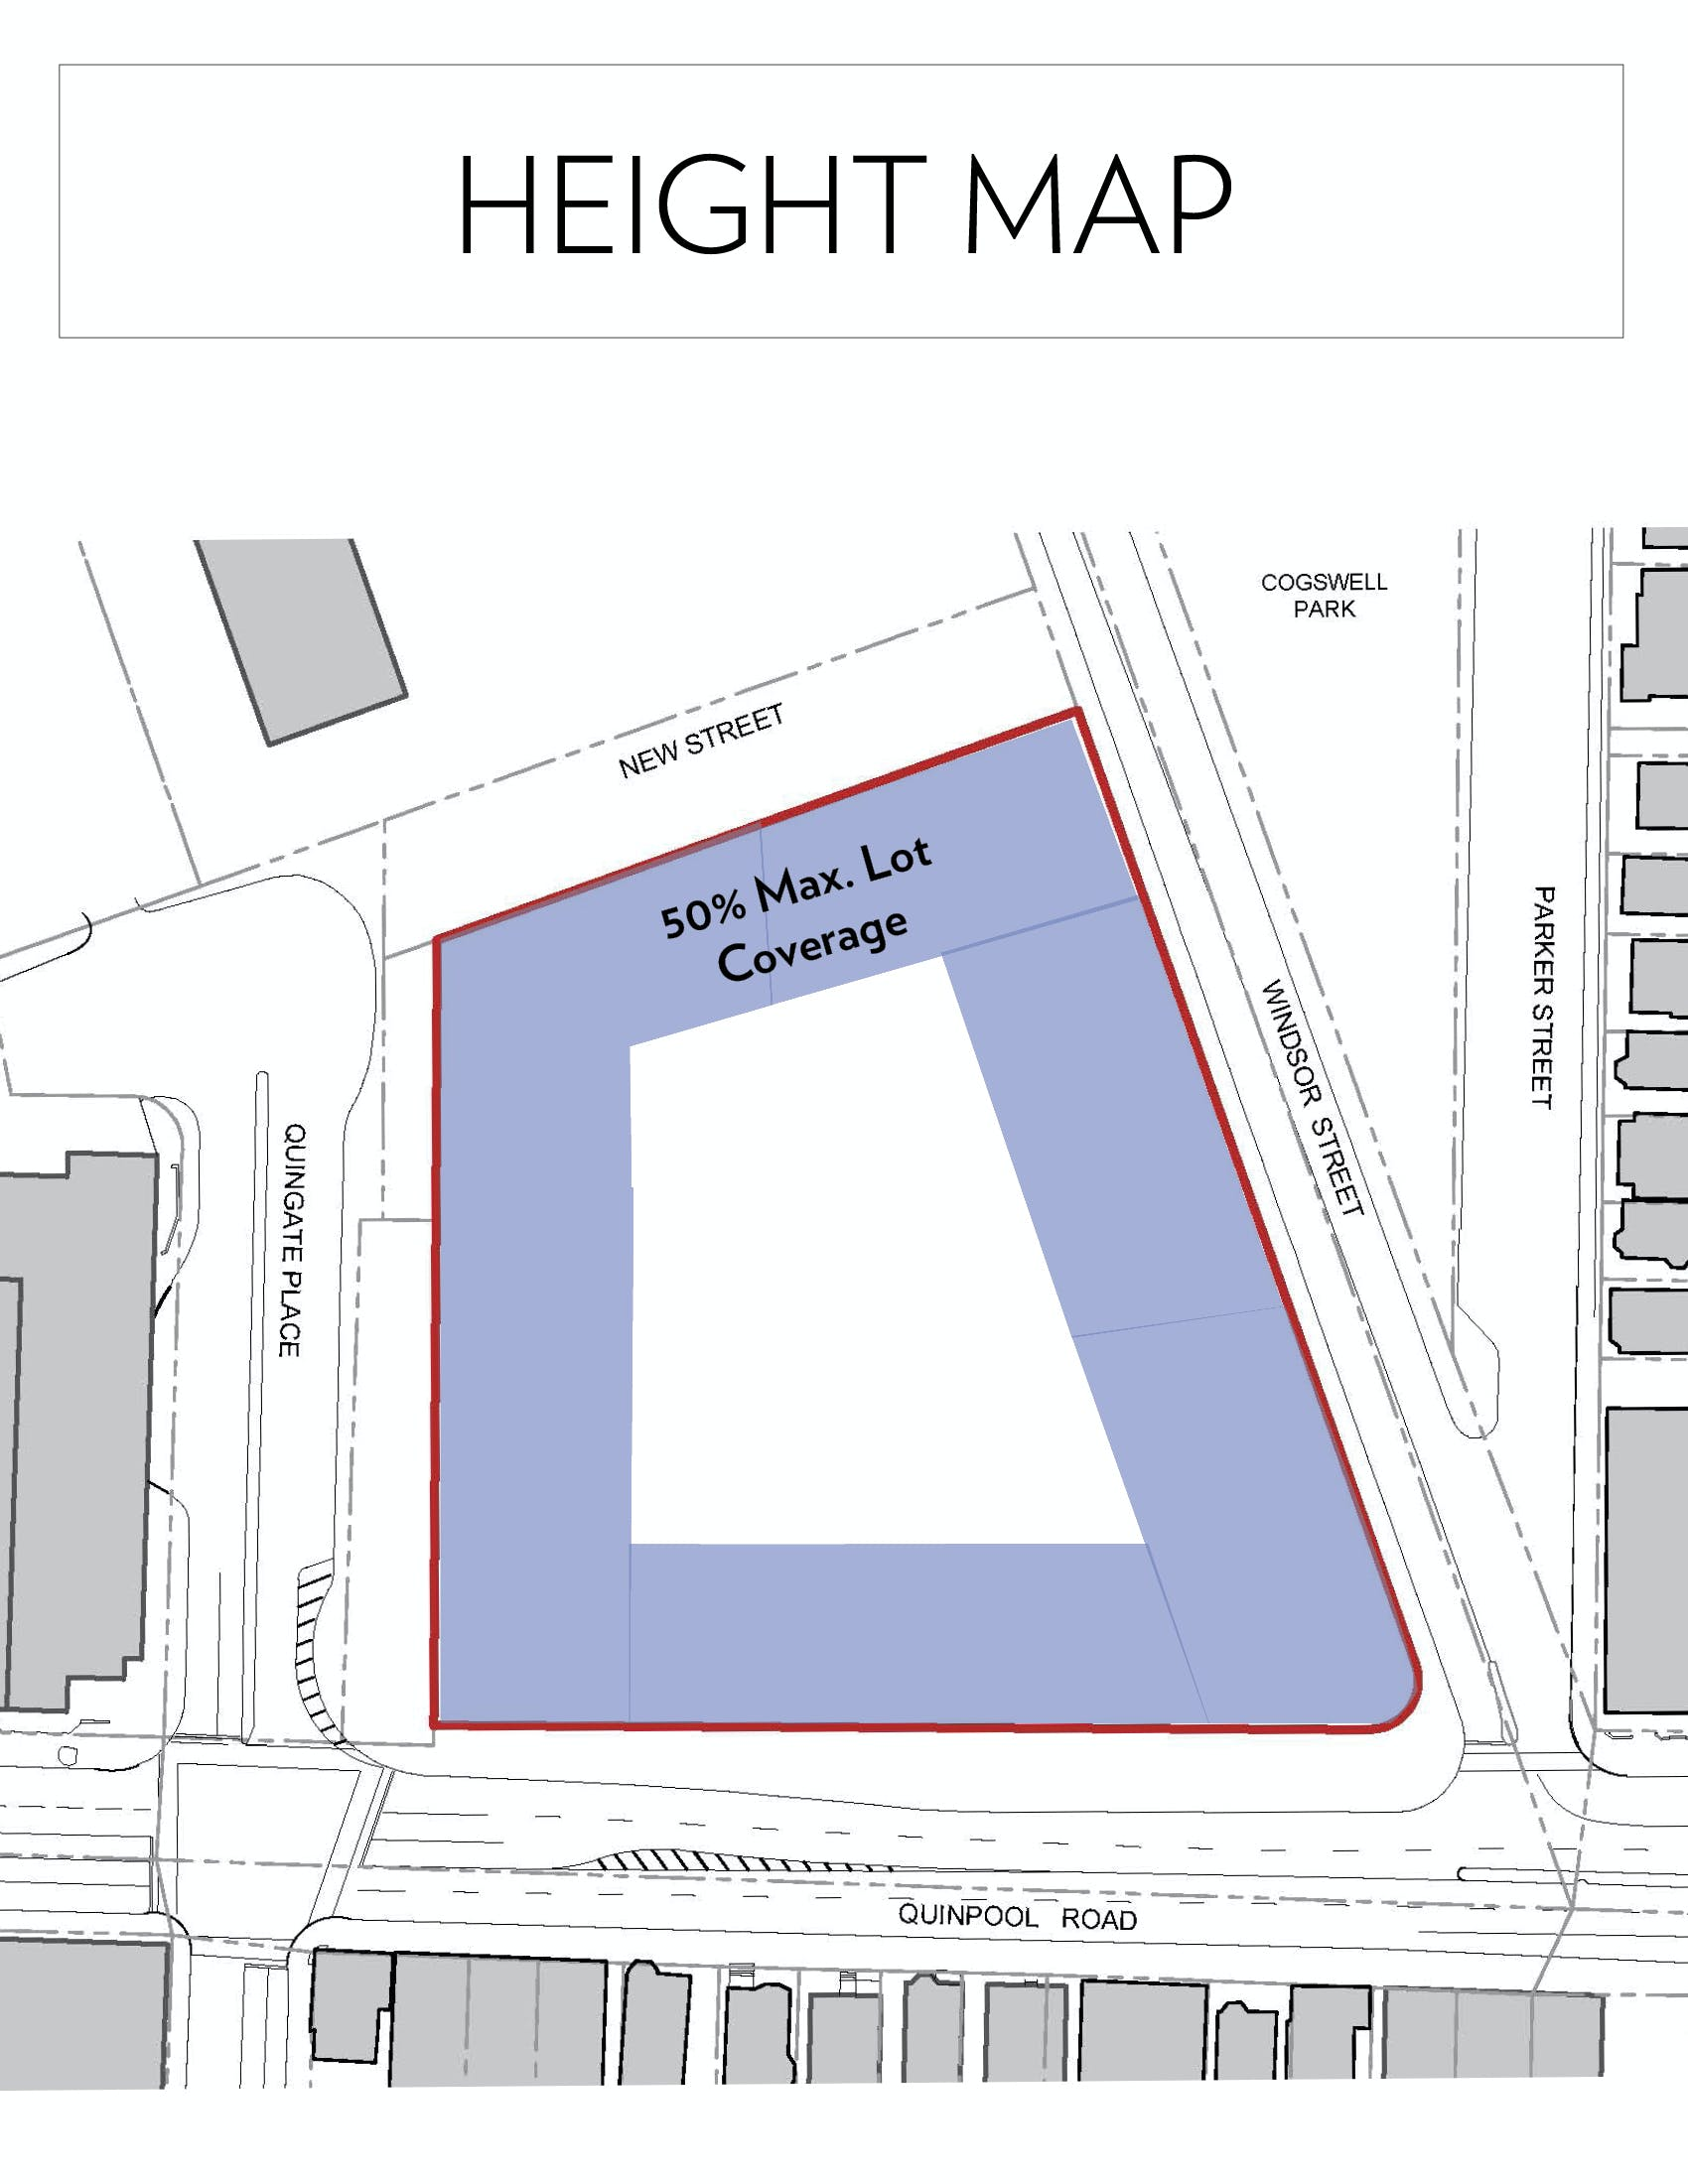 Open Space - Lot Coverage